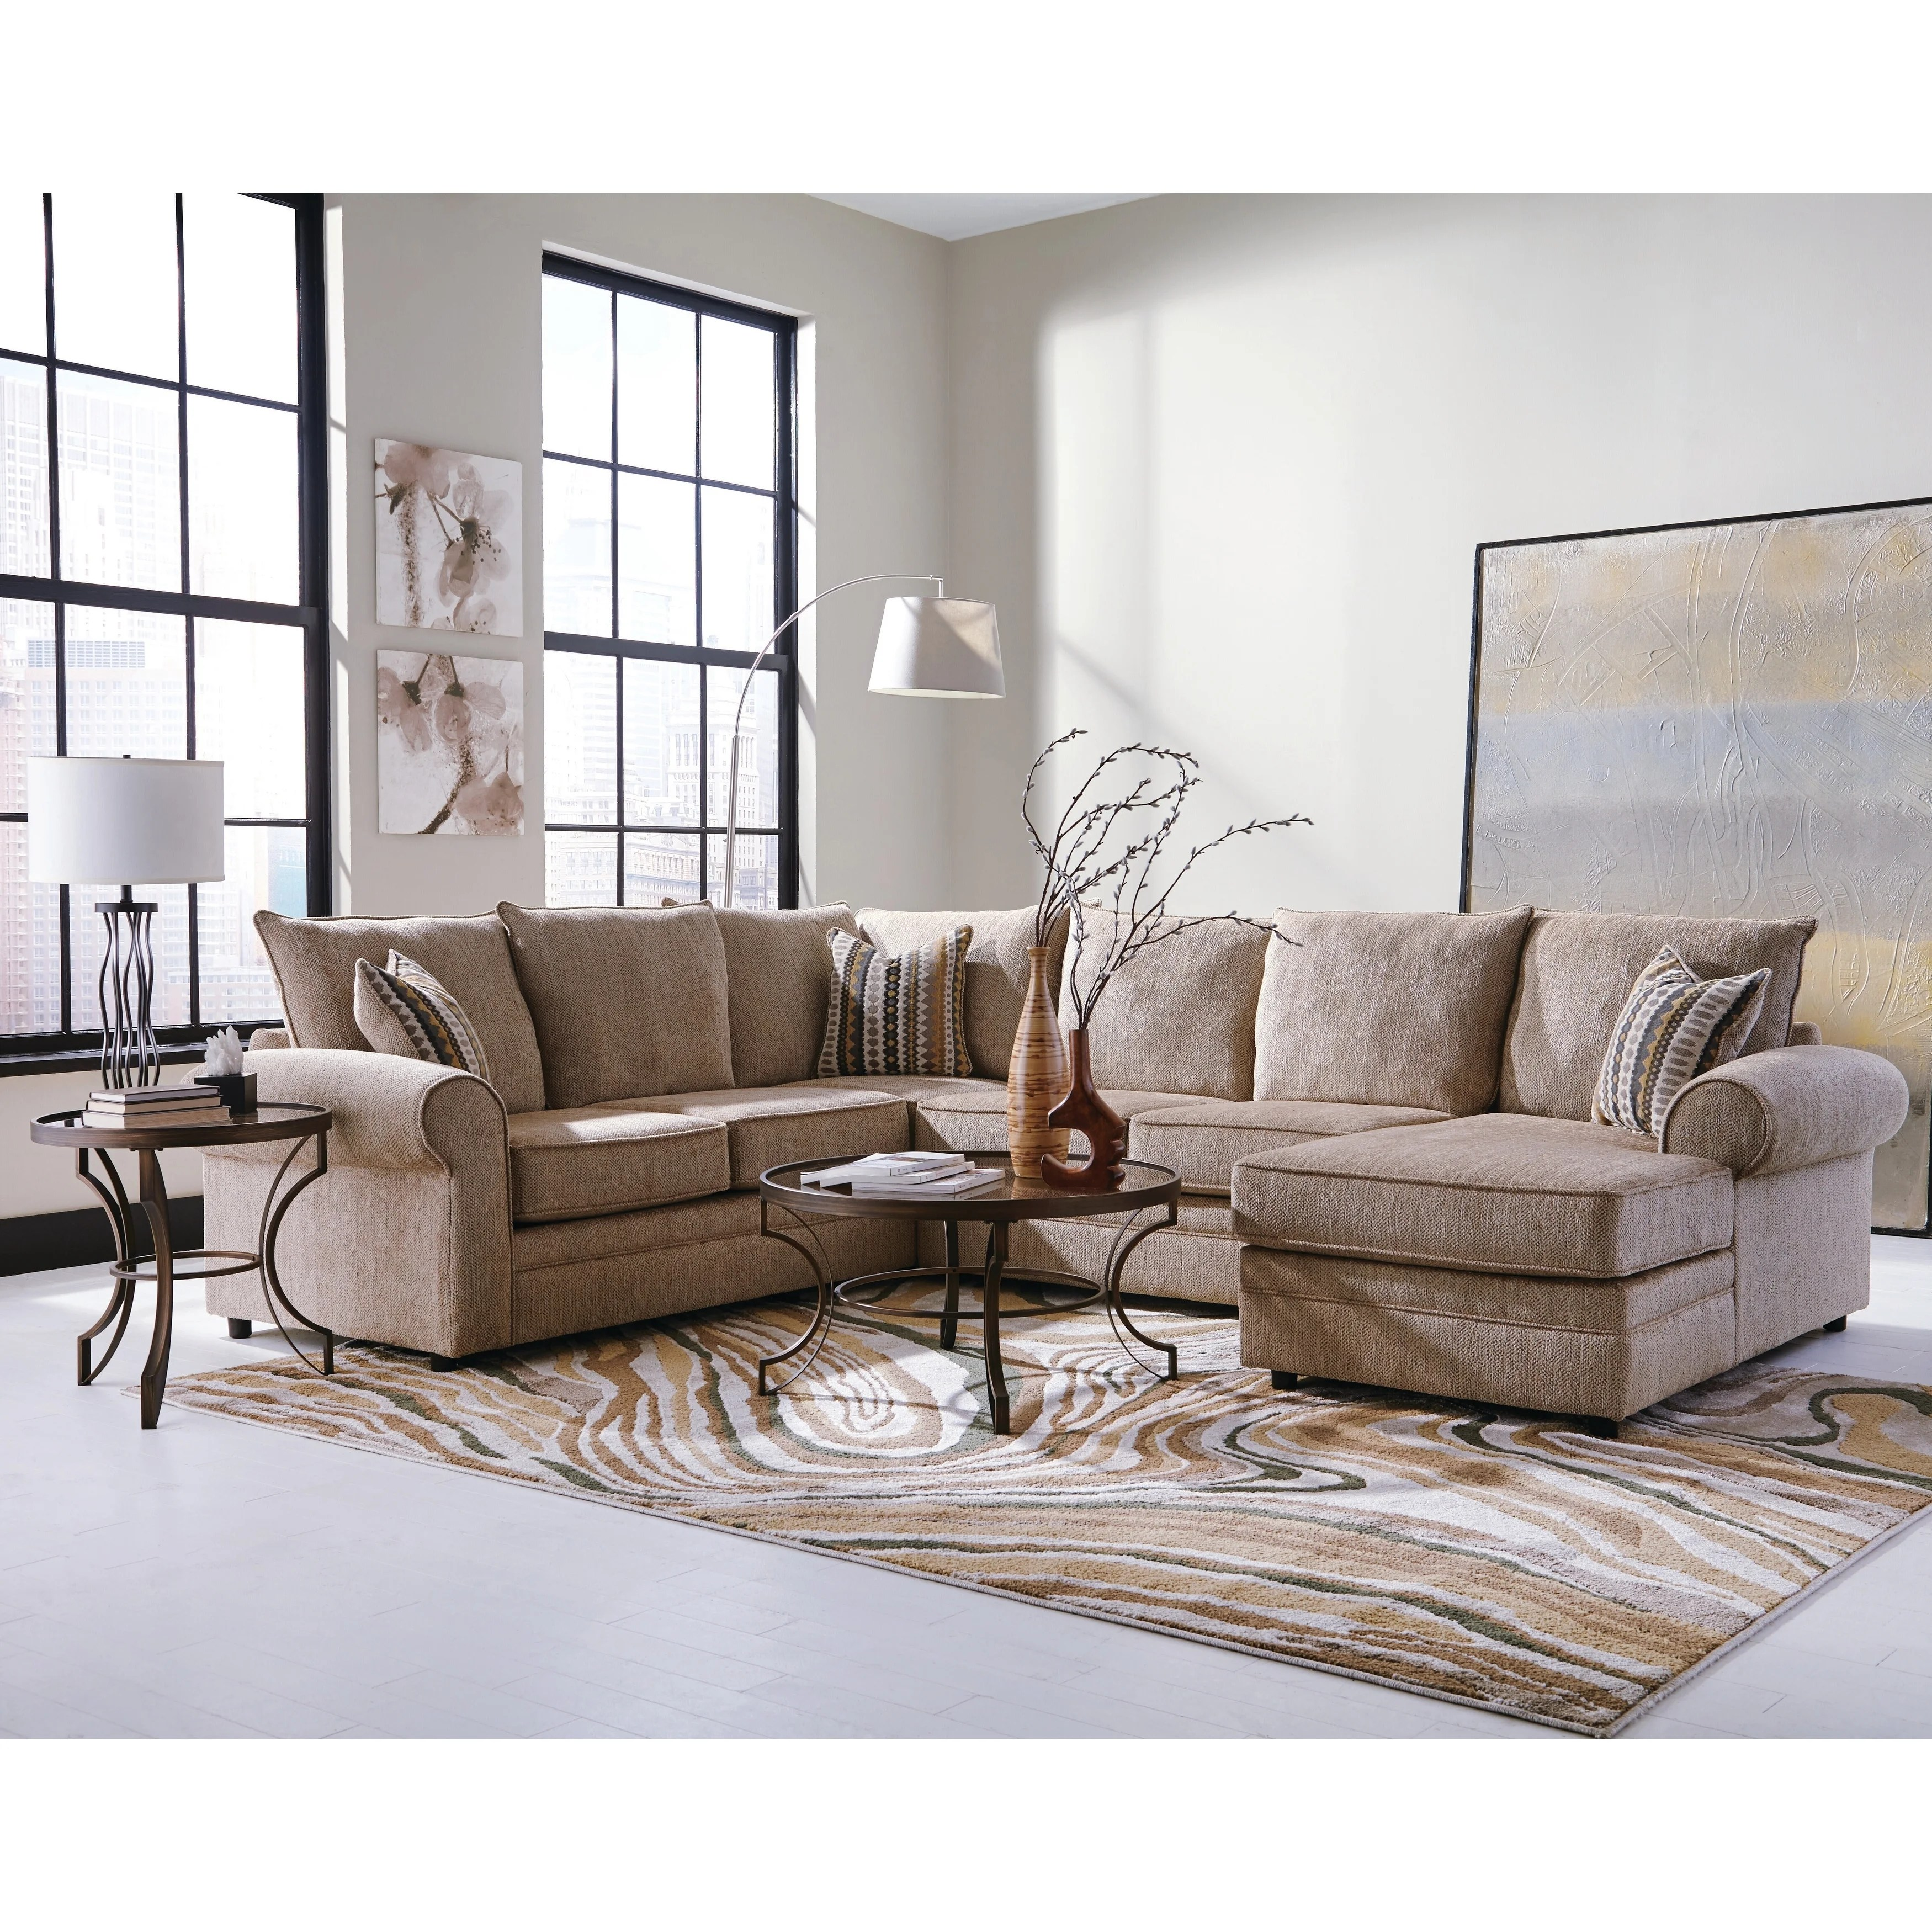 U Couch Buy U Shape Sectional Sofas Online At Overstock Our Best Living